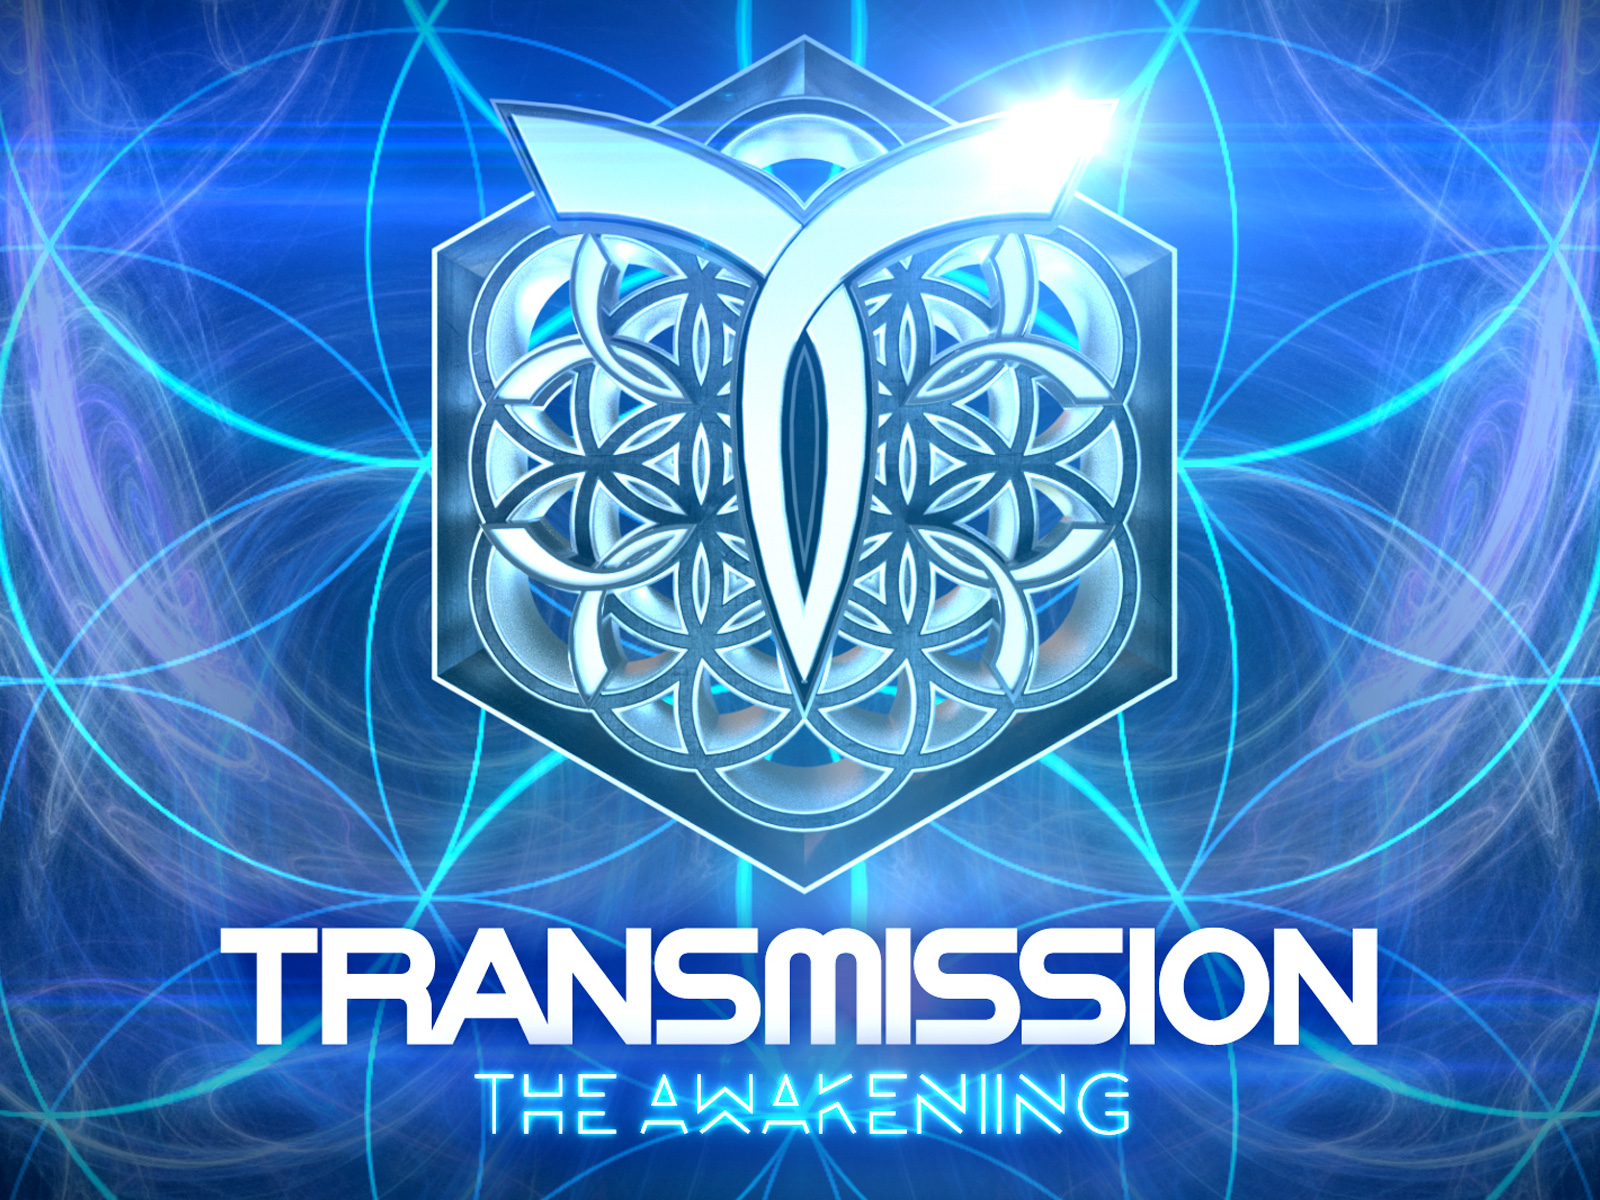 transmission-the-awakening-sydney-oz-edm-2019